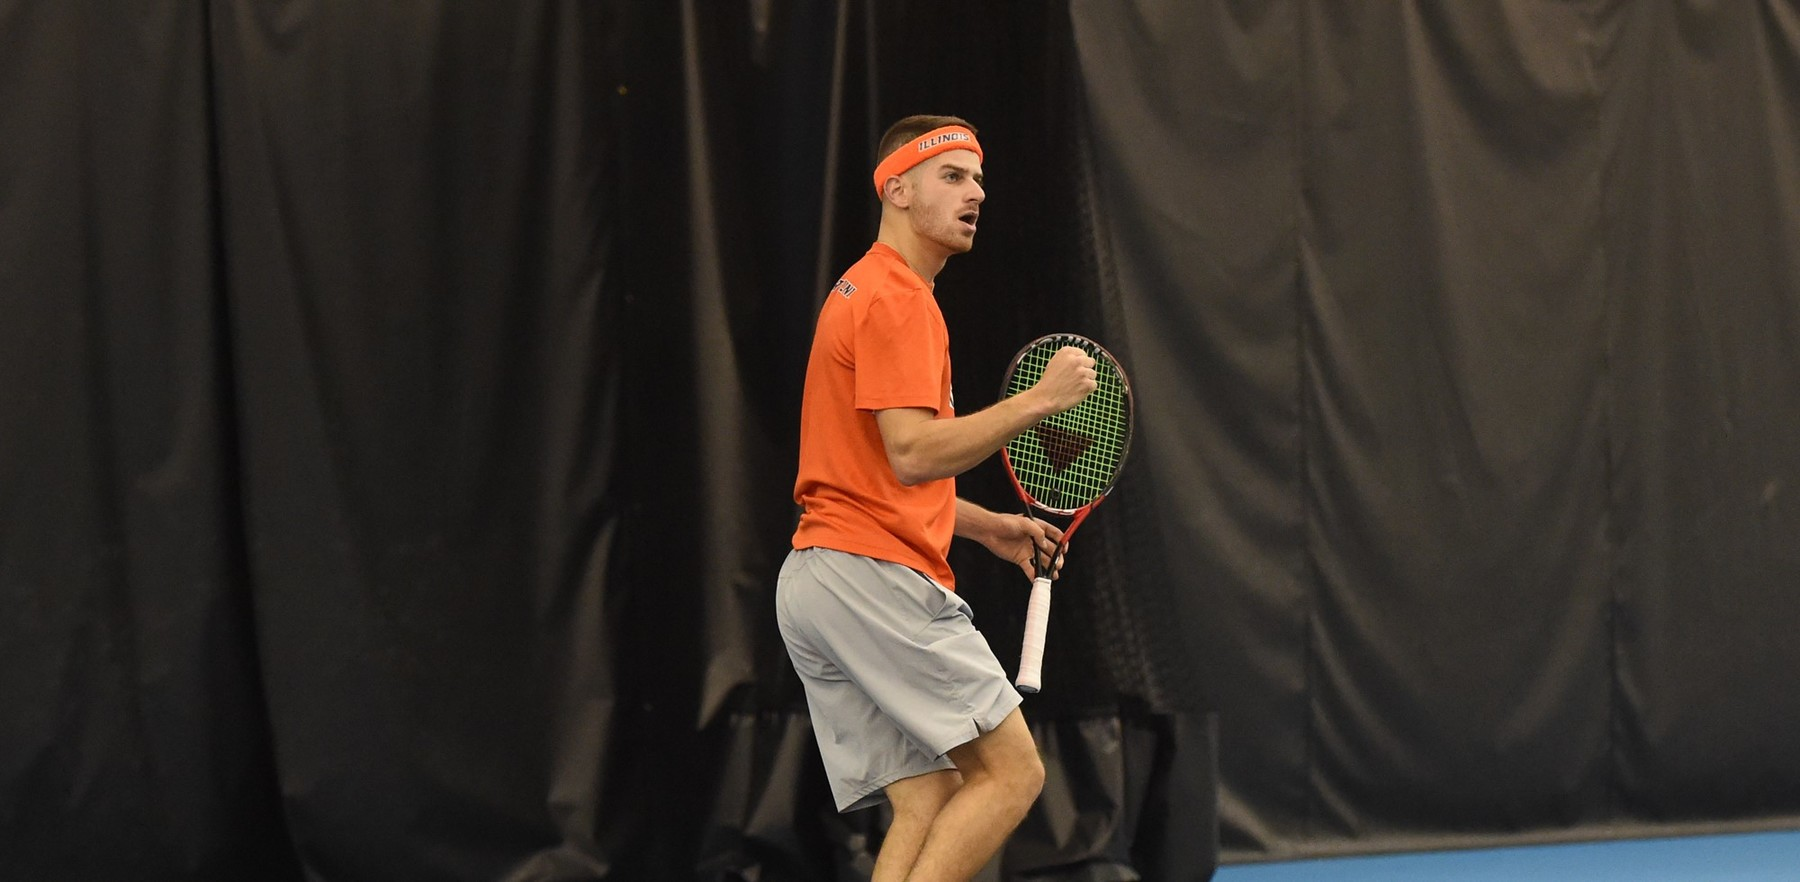 Aron Hiltzik pumps fist after winning a point